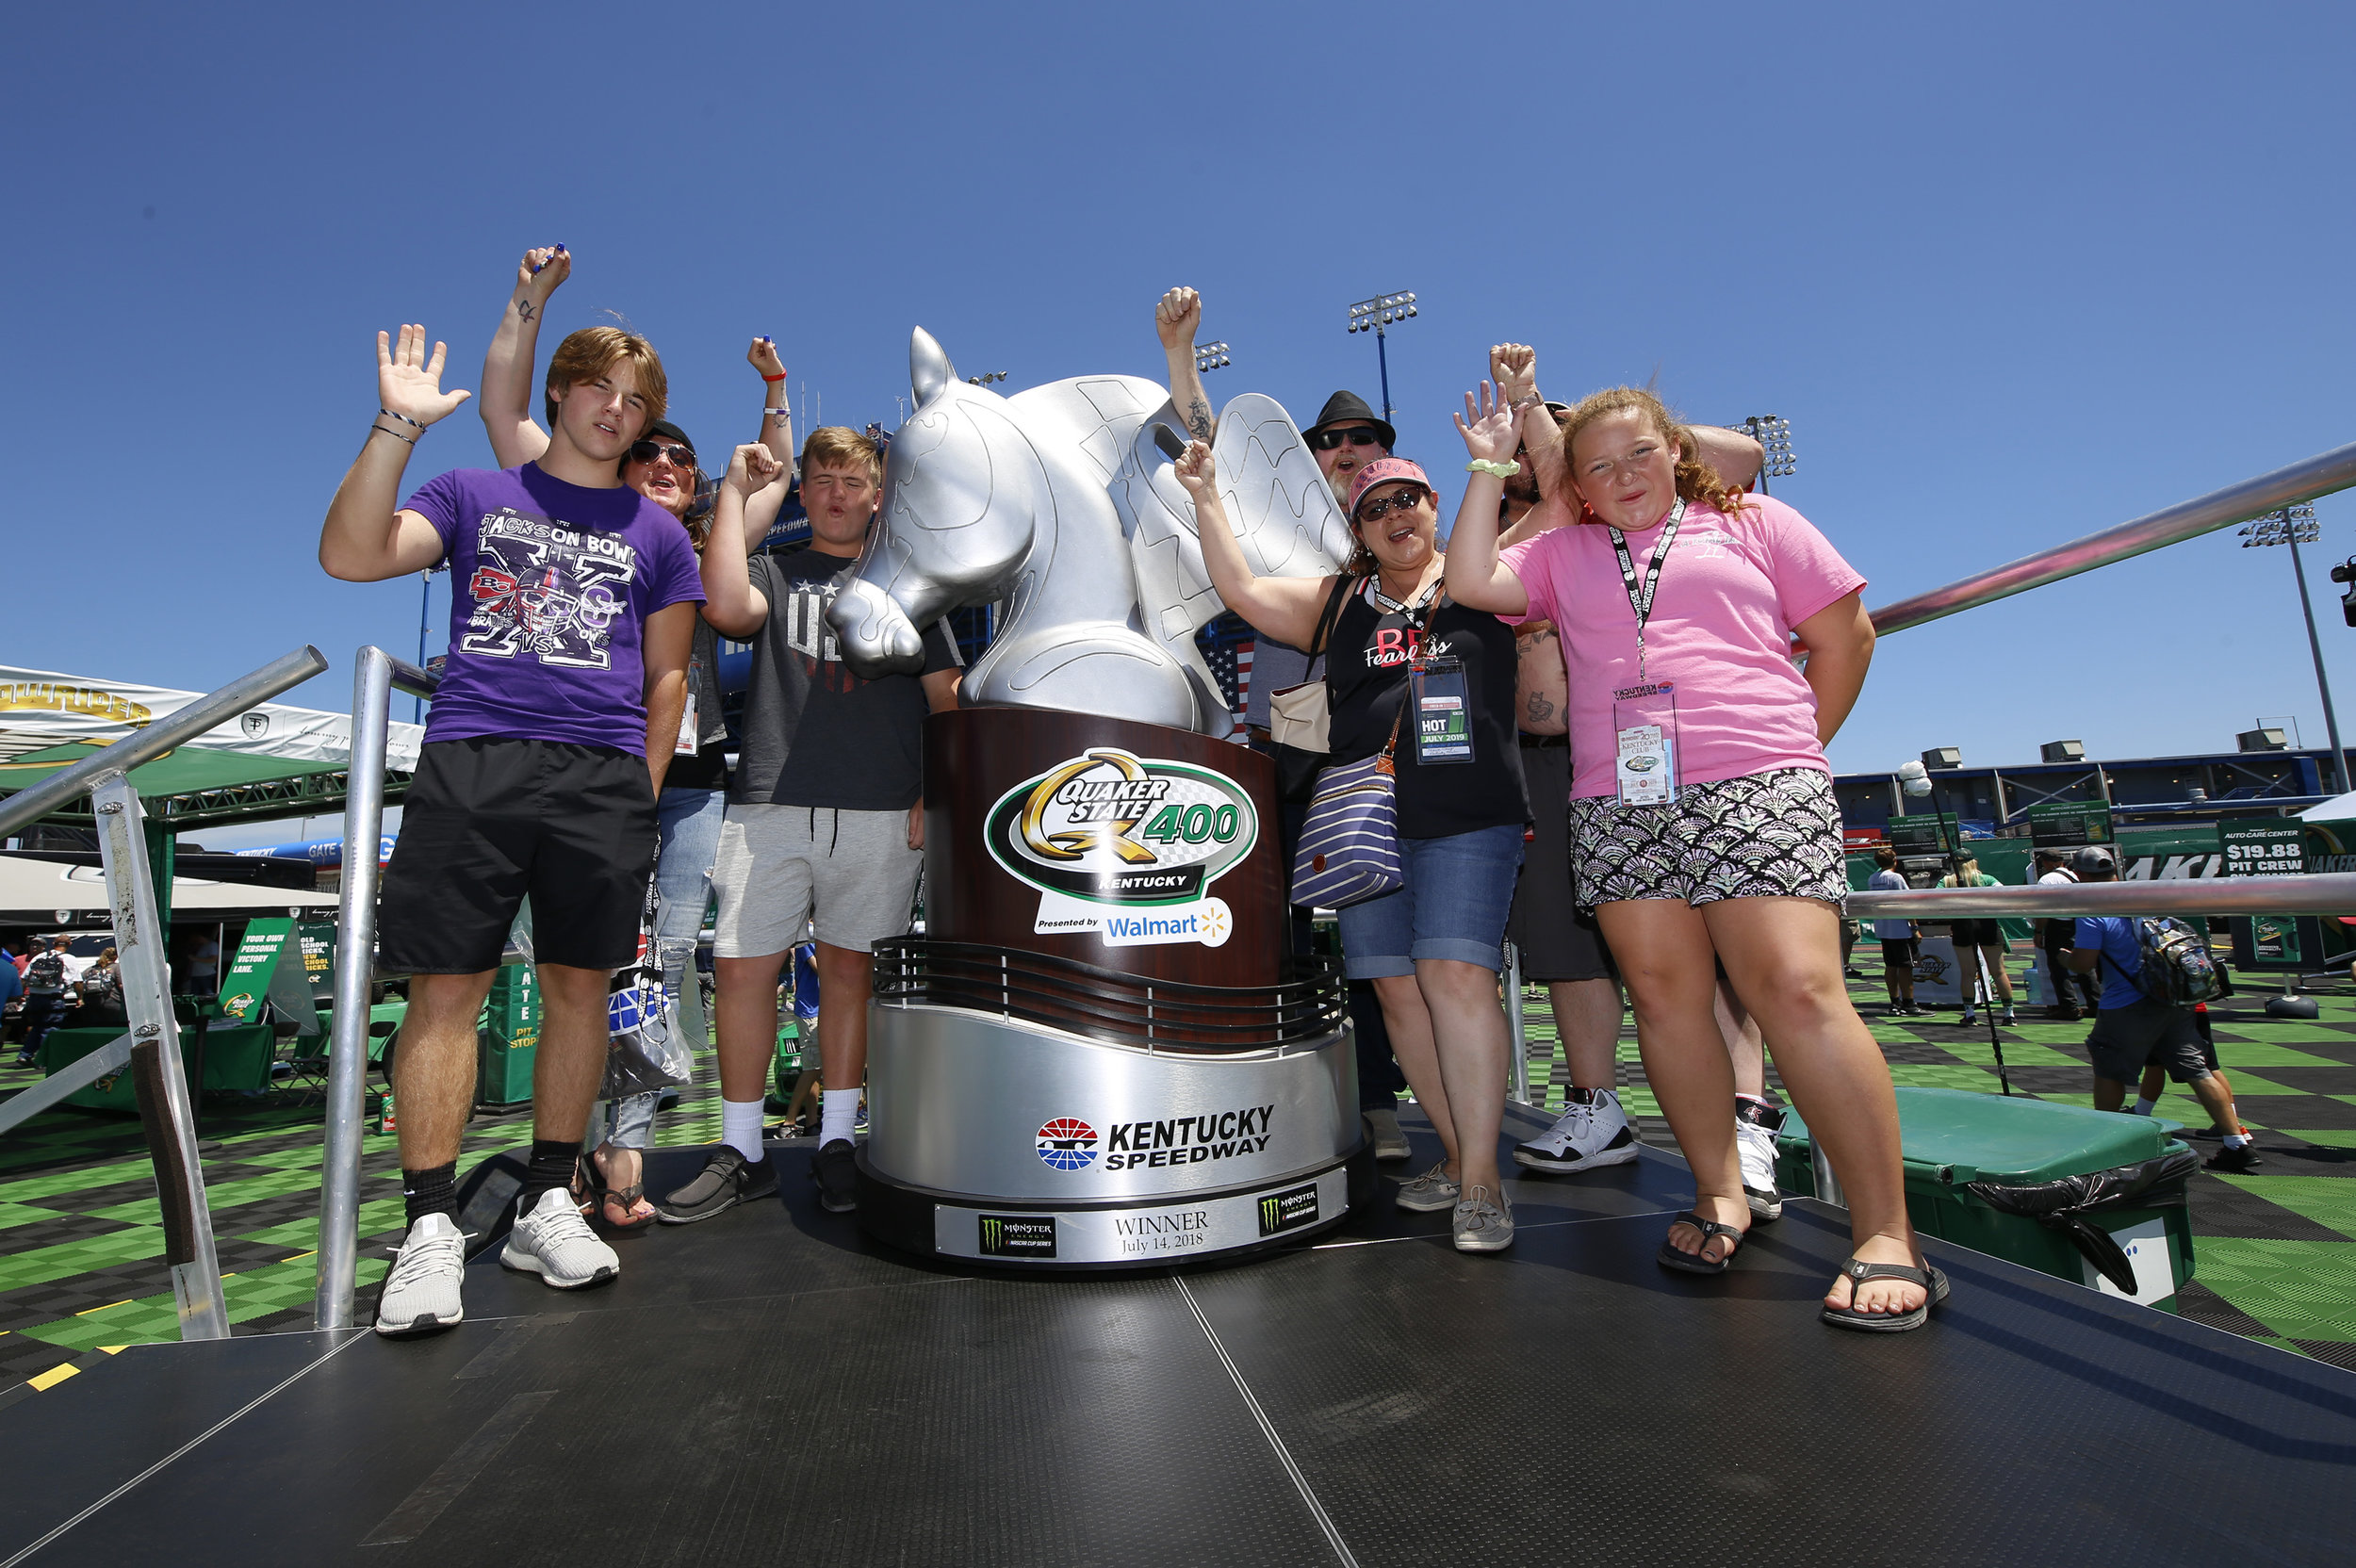 LIVING TROPHY  The culmination of the fan experience was capturing   the winning moment, with a photo finish, on the larger-than-life replica of the Quaker State 400 trophy.